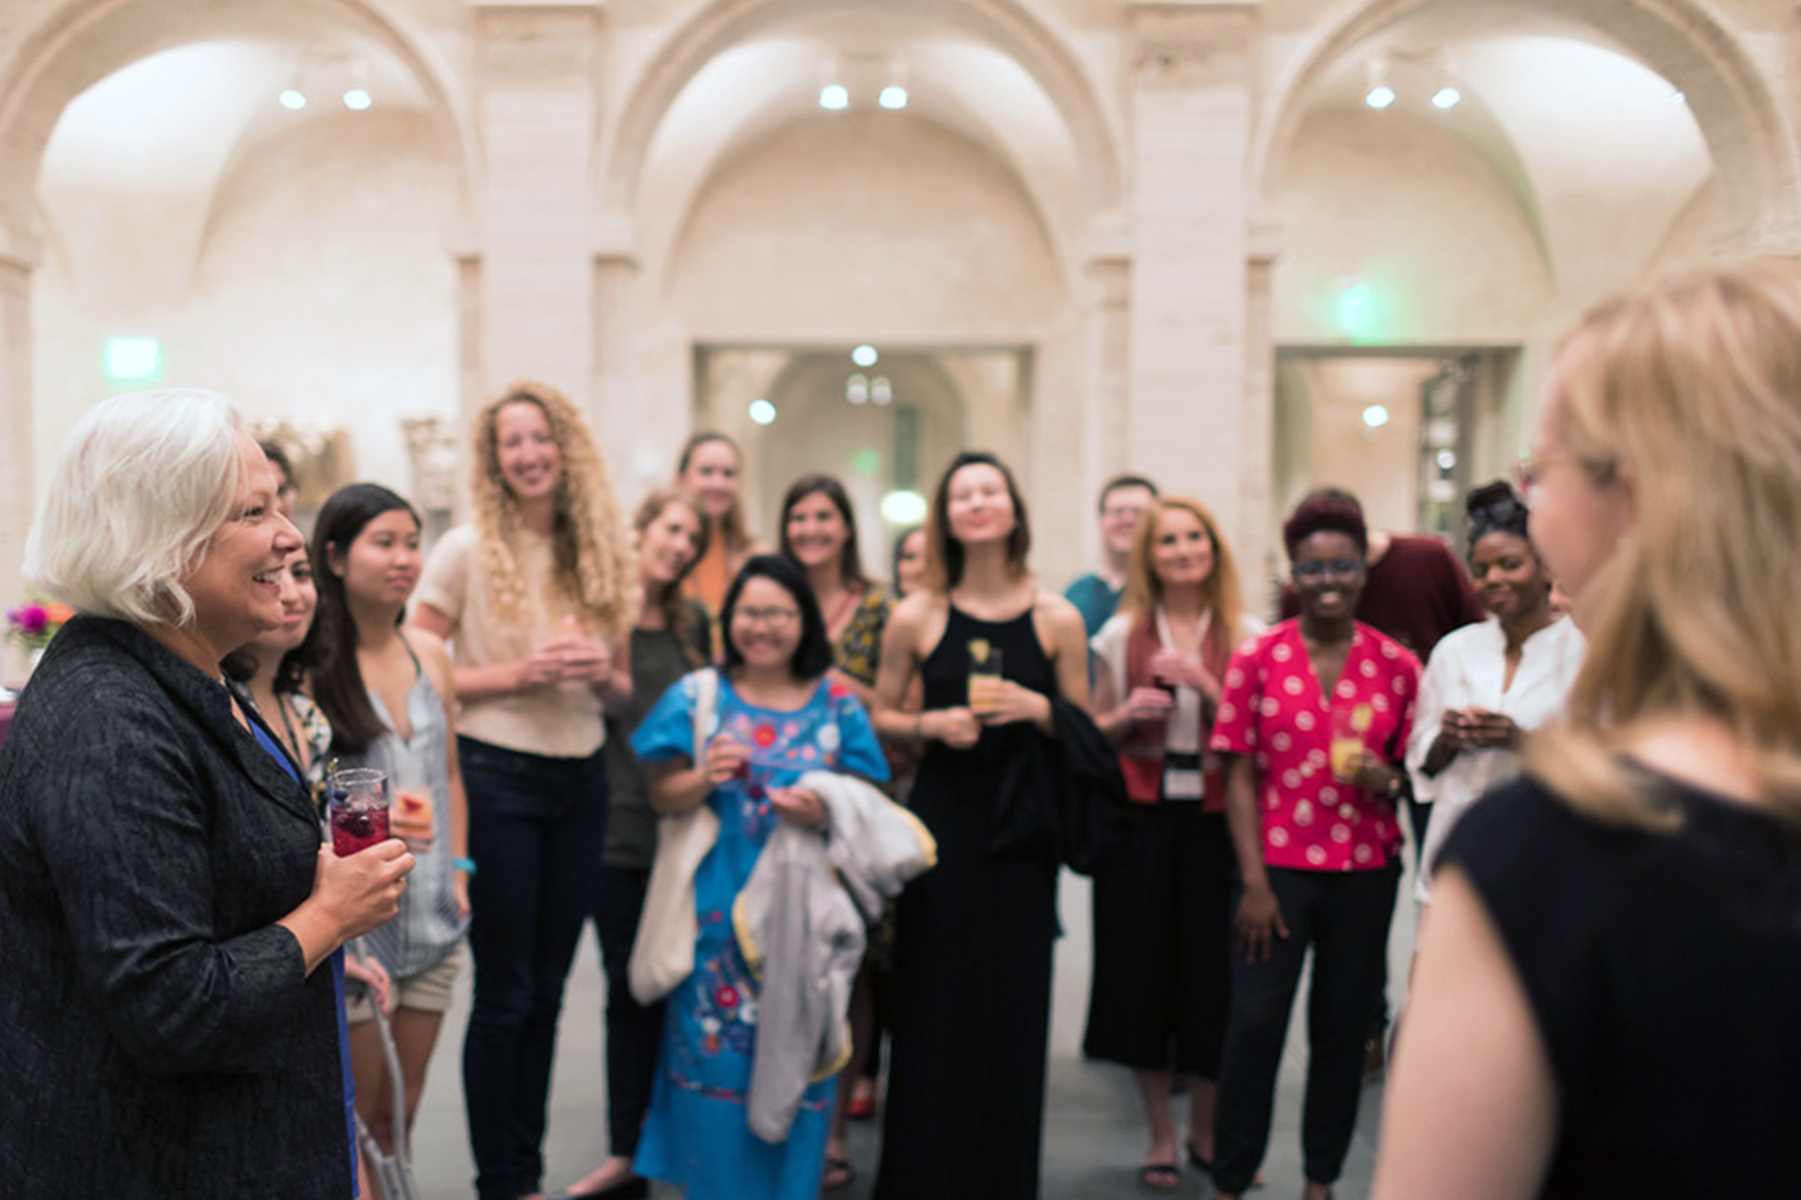 Martha Tedeschi, the museums' Elizabeth and John Moors Cabot Director, thanks students for their involvement with the Harvard Art Museums during a Student Late Night event.